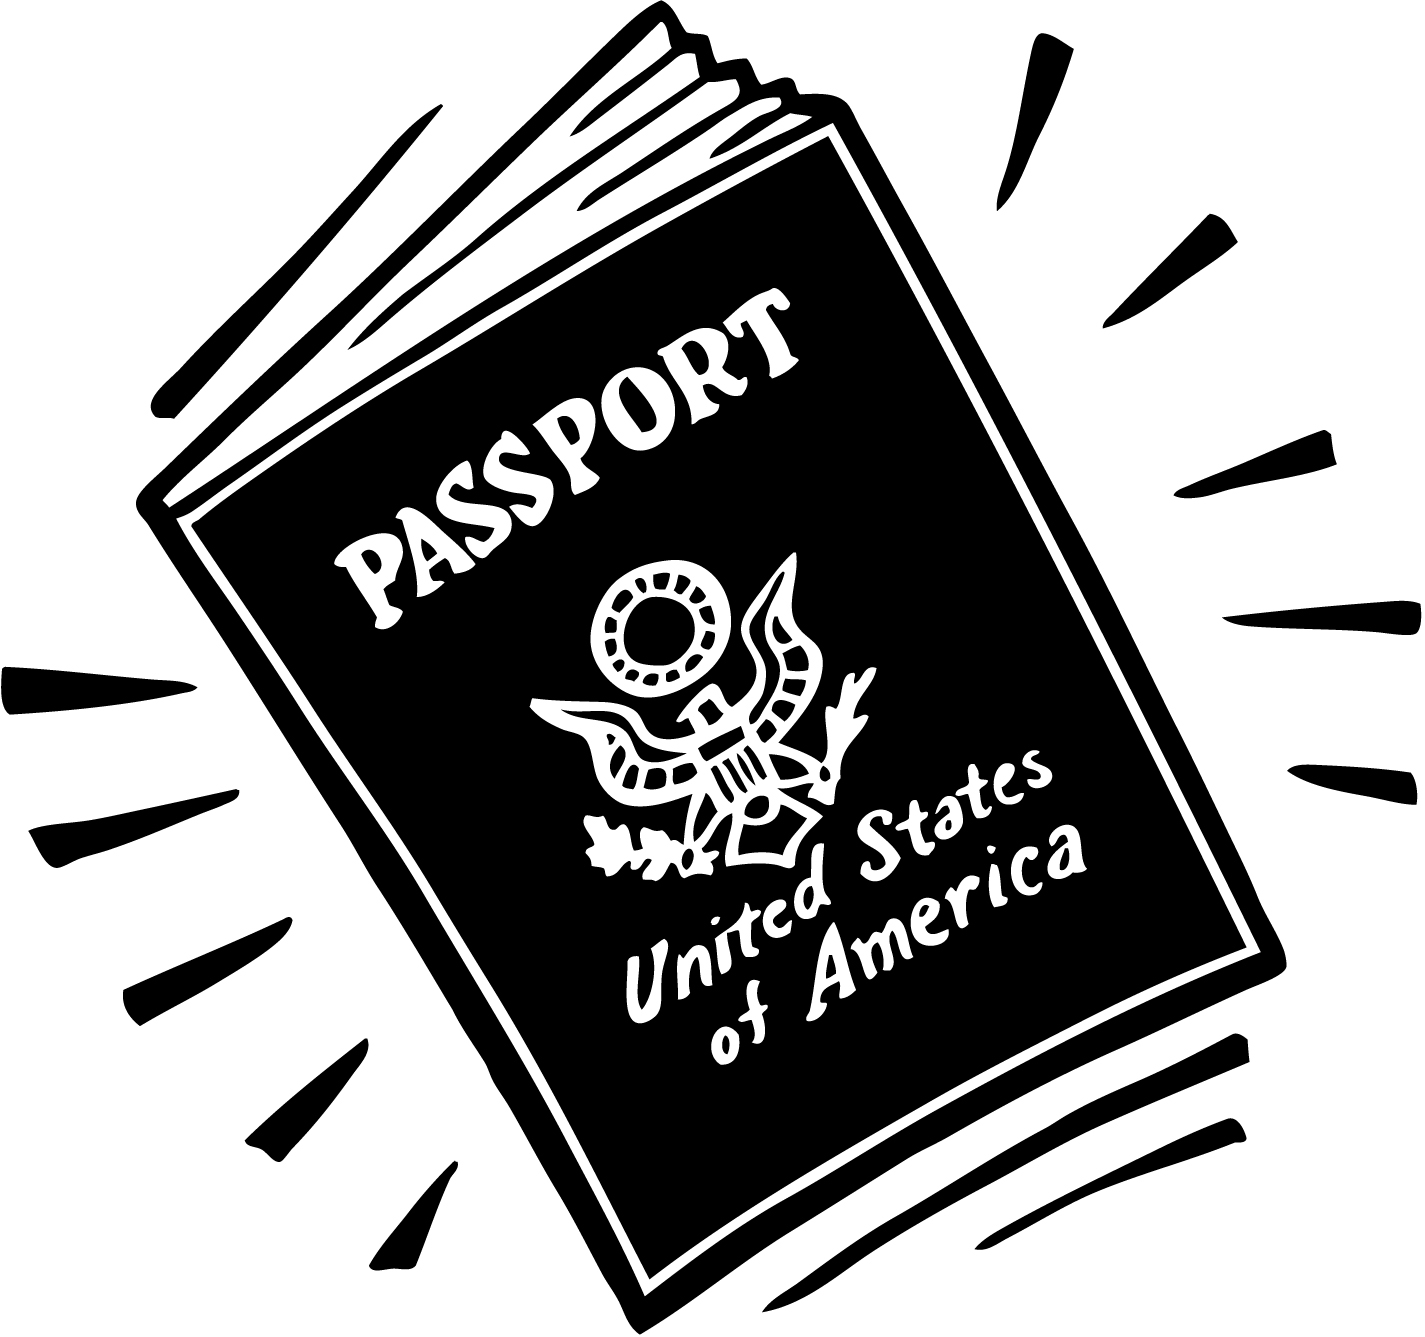 United states passport clipart clip art library library Passport clip art - ClipartFest clip art library library